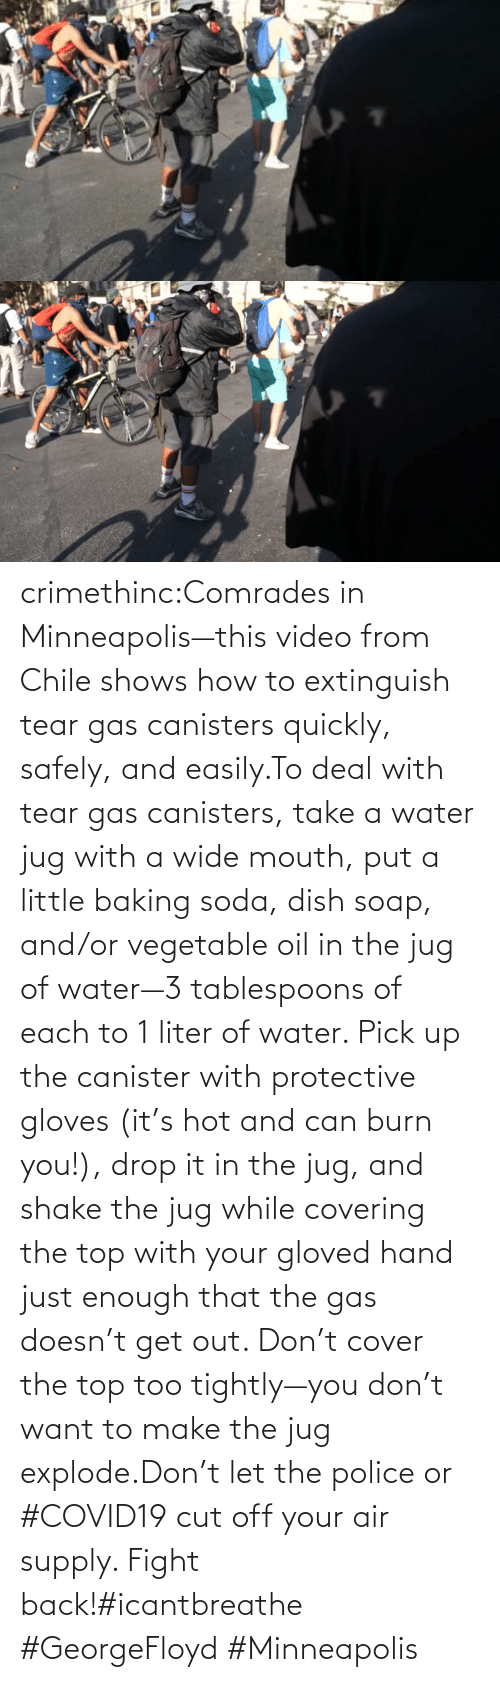 Easily: crimethinc:Comrades in Minneapolis—this video from Chile shows how to extinguish tear gas canisters quickly, safely, and easily.To deal with tear gas canisters, take a water jug with a wide mouth, put a little baking soda, dish soap, and/or vegetable oil in the jug of water—3 tablespoons of each to 1 liter of water. Pick up the canister with protective gloves (it's hot and can burn you!), drop it in the jug, and shake the jug while covering the top with your gloved hand just enough that the gas doesn't get out. Don't cover the top too tightly—you don't want to make the jug explode.Don't let the police or #COVID19 cut off your air supply. Fight back!#icantbreathe #GeorgeFloyd #Minneapolis